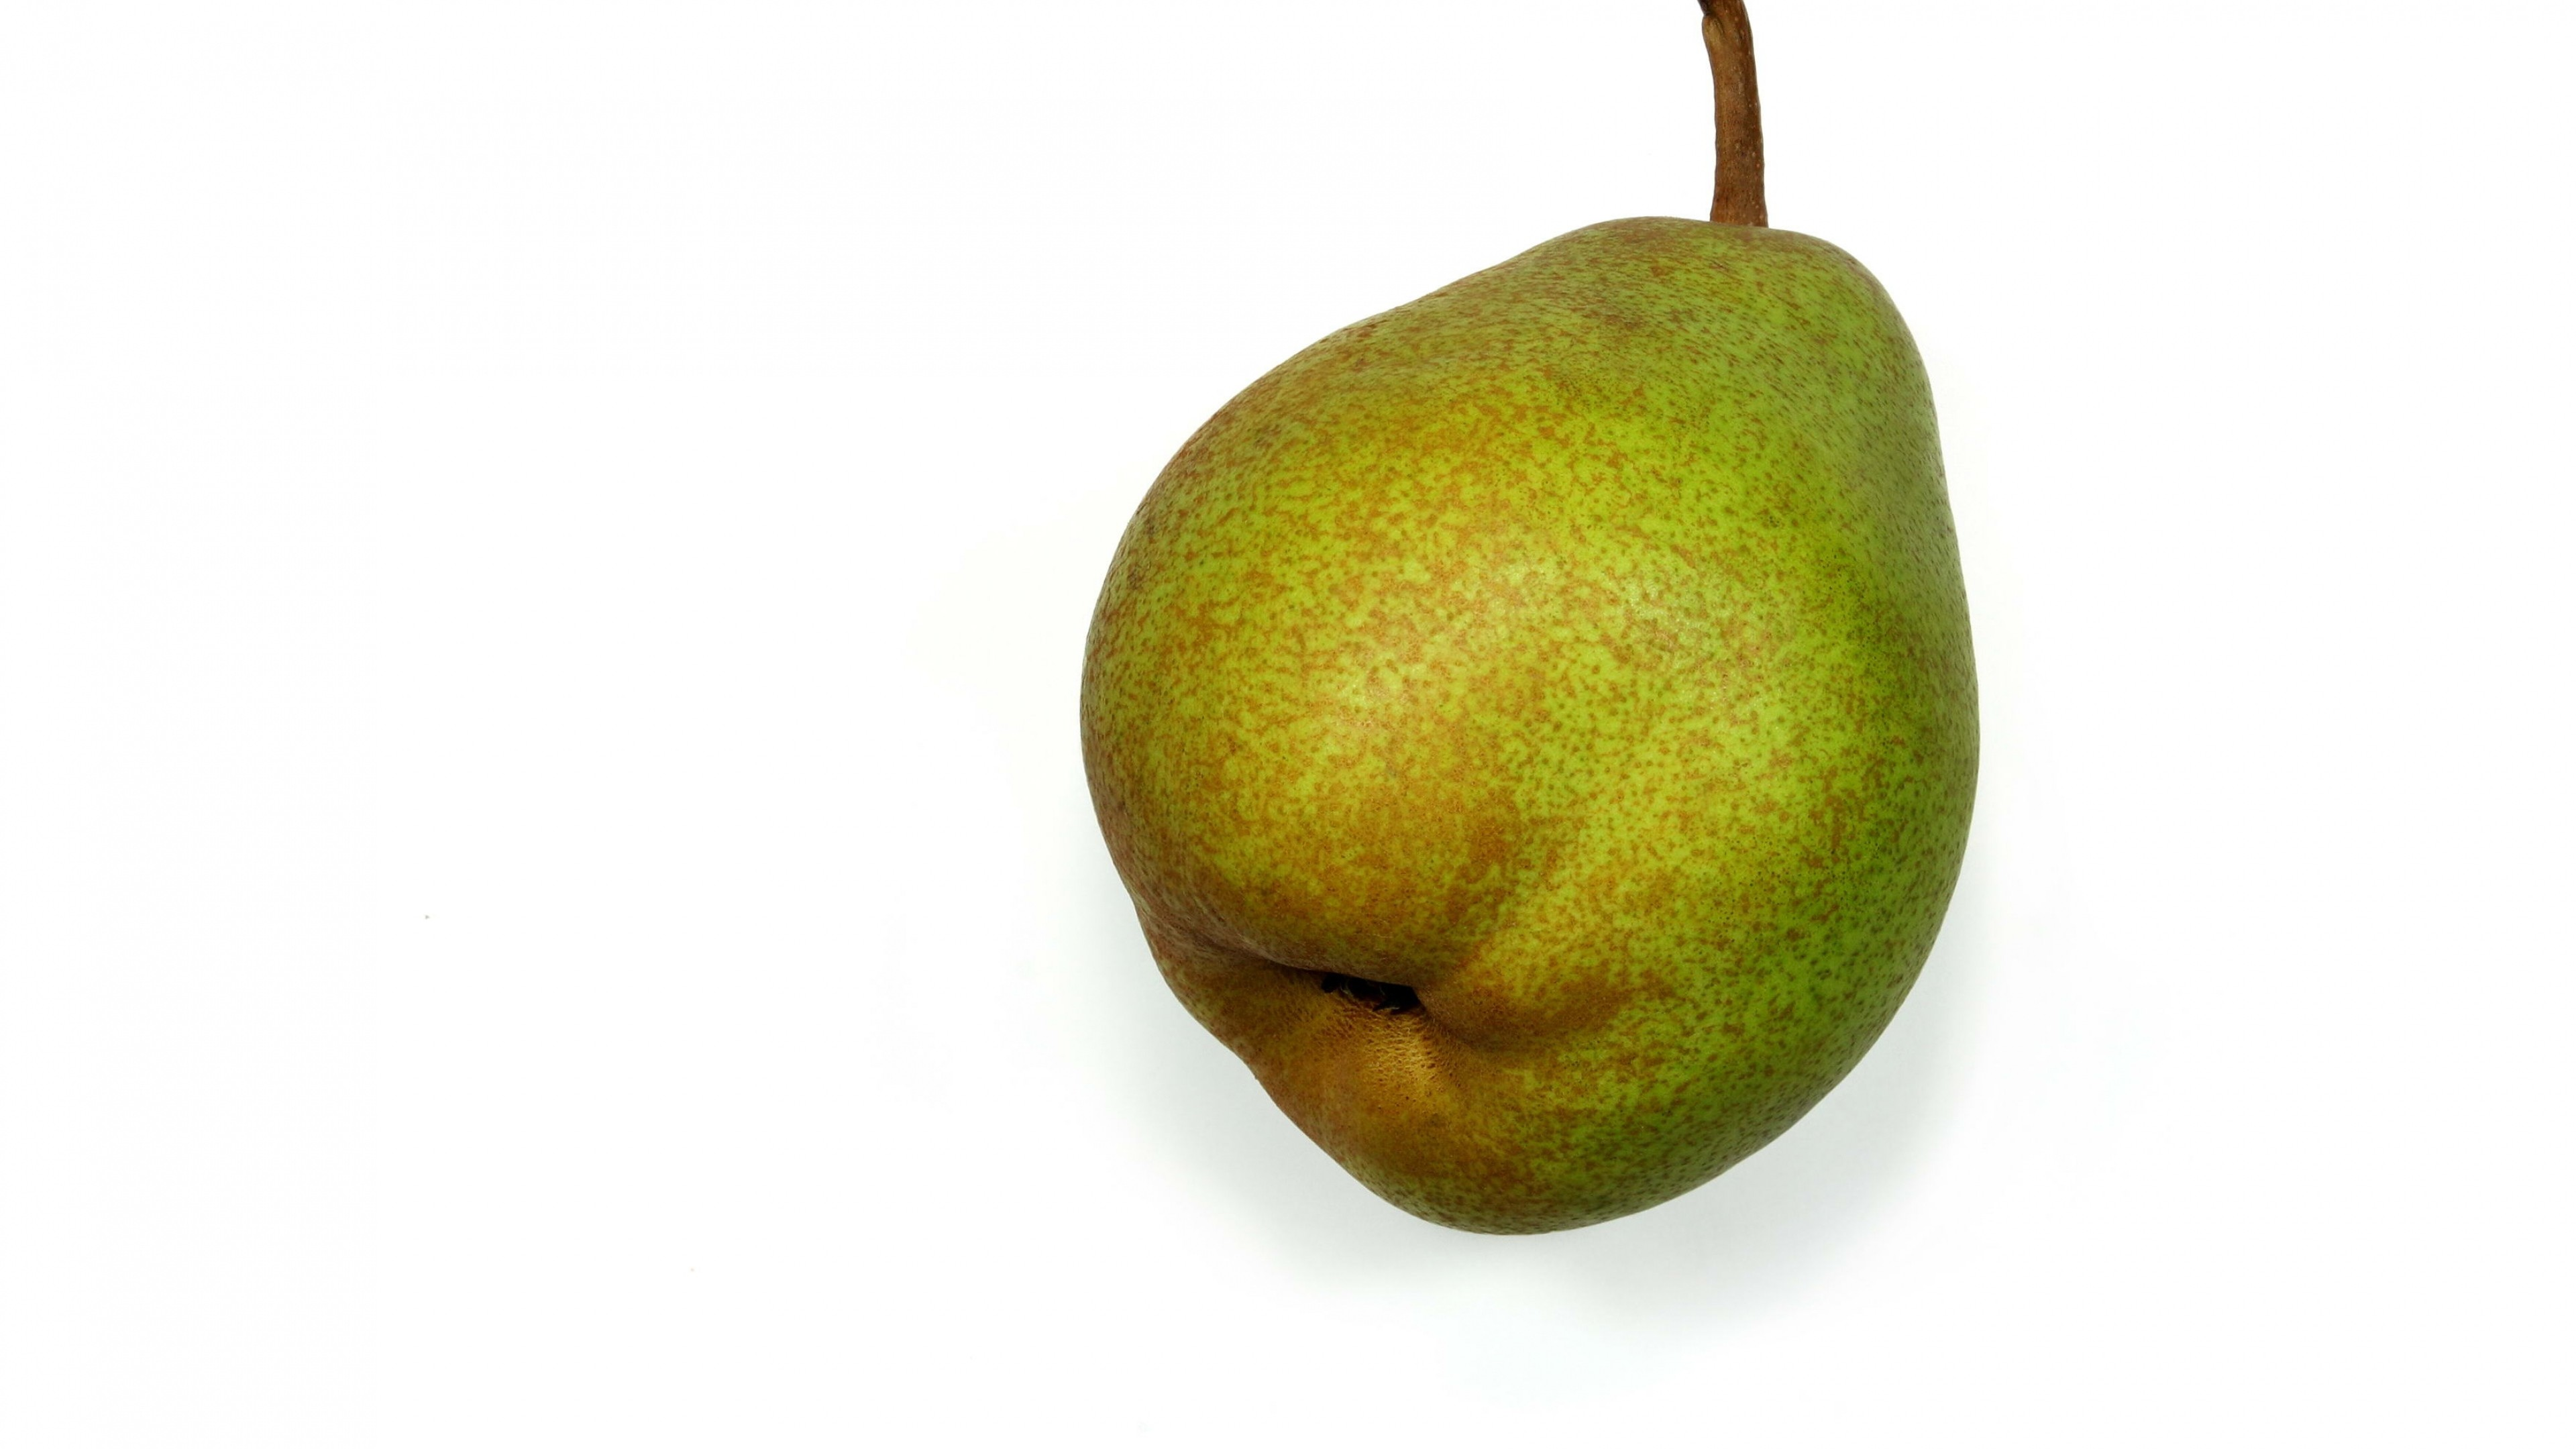 3840x2160  Wallpaper pear, stains, fruit